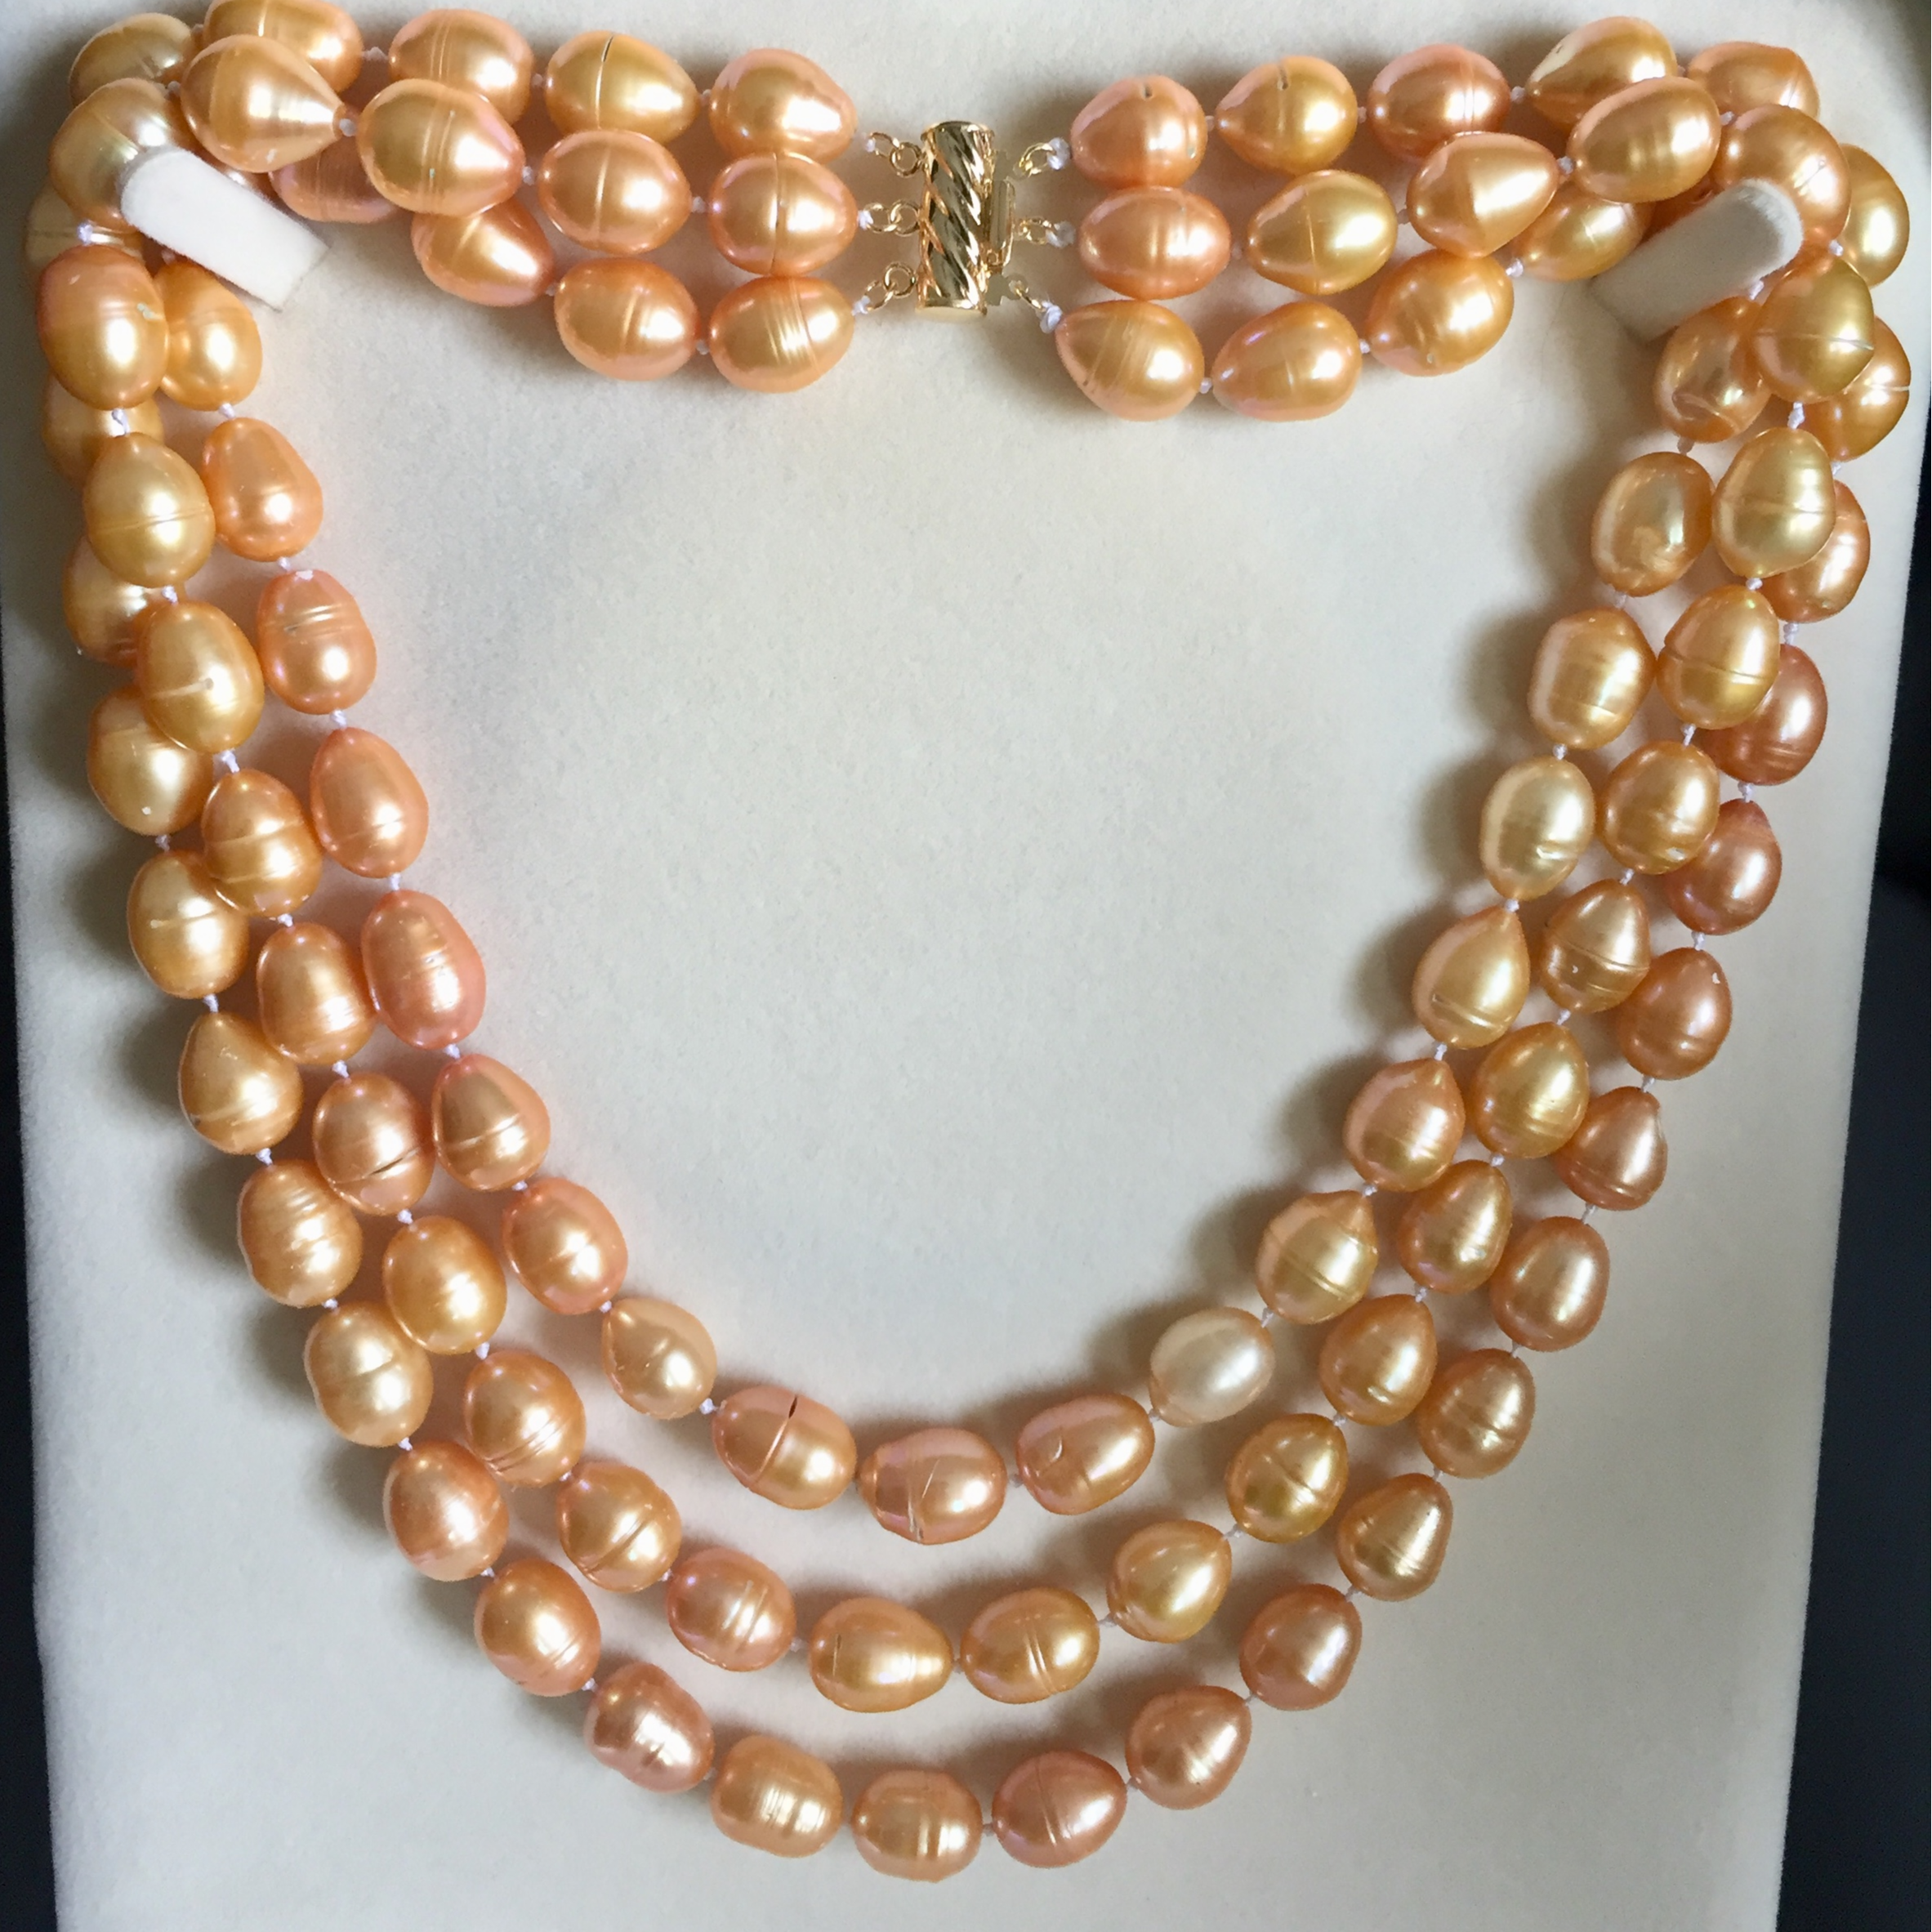 Triple Strand Golden South Sea Pearl Necklace